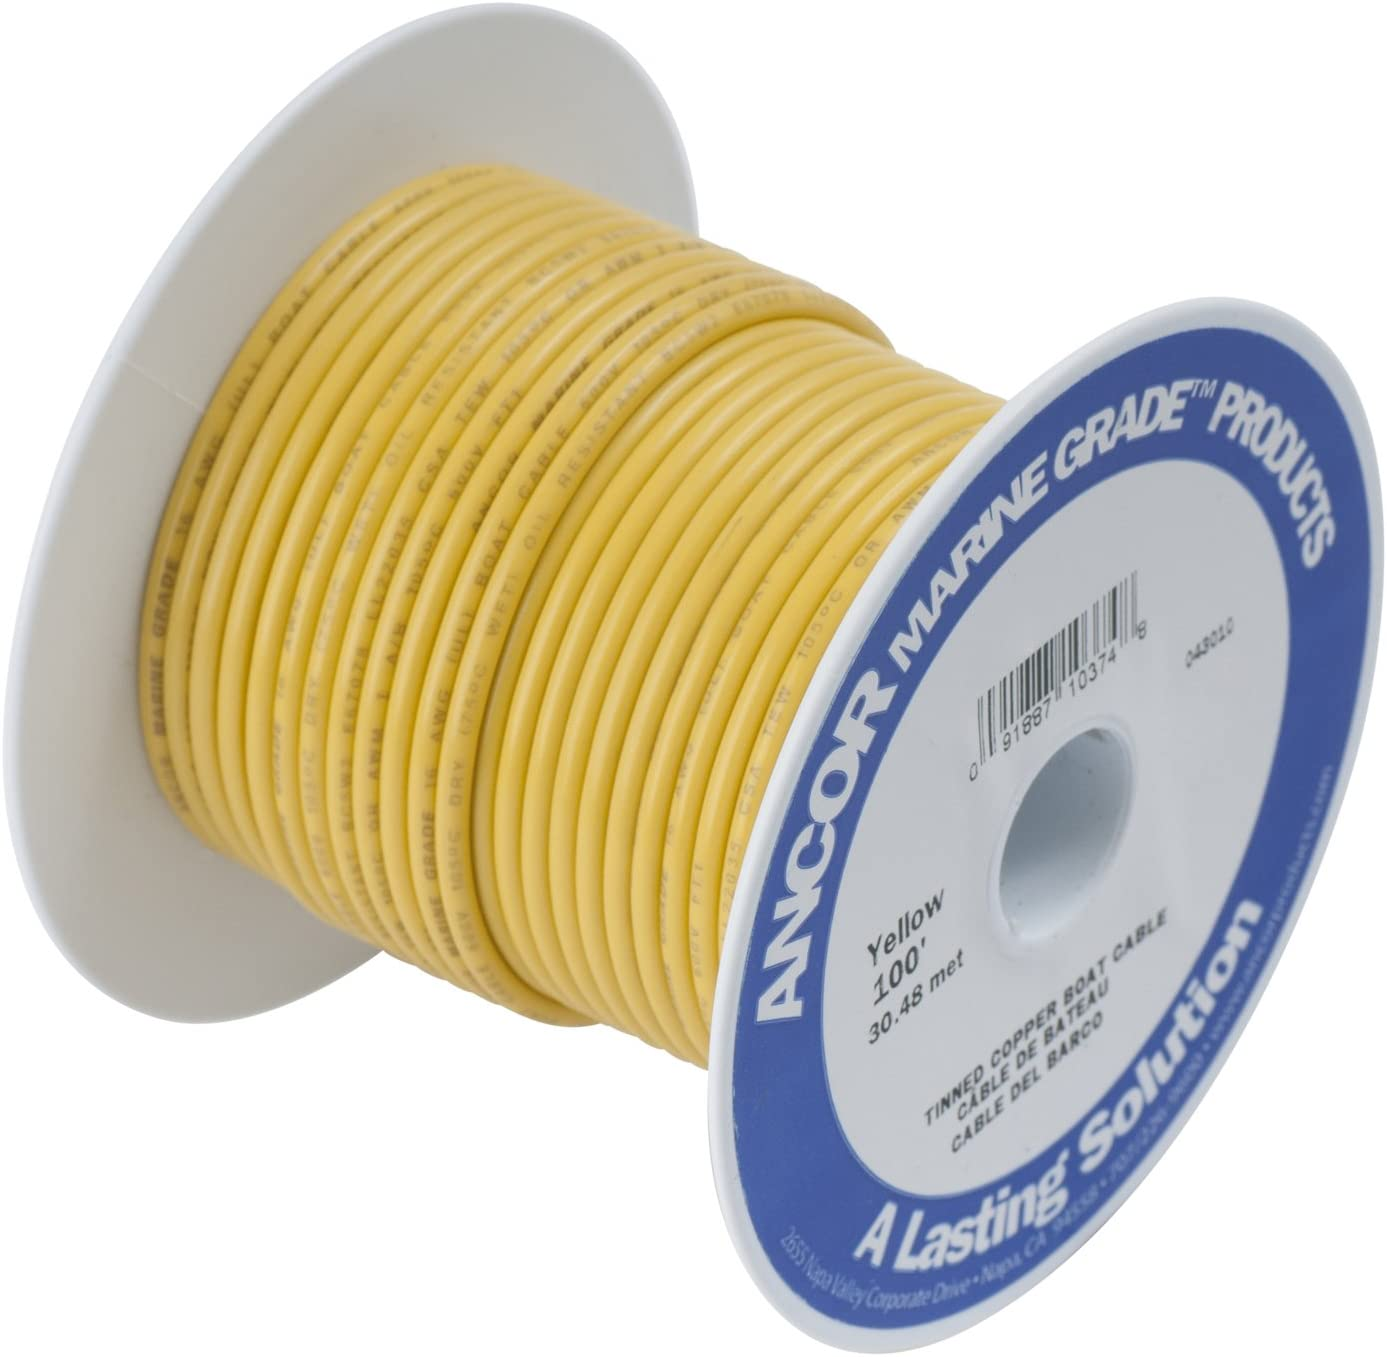 Ancor Marine Grade Primary Wire and Battery Cable : Sports & Outdoors